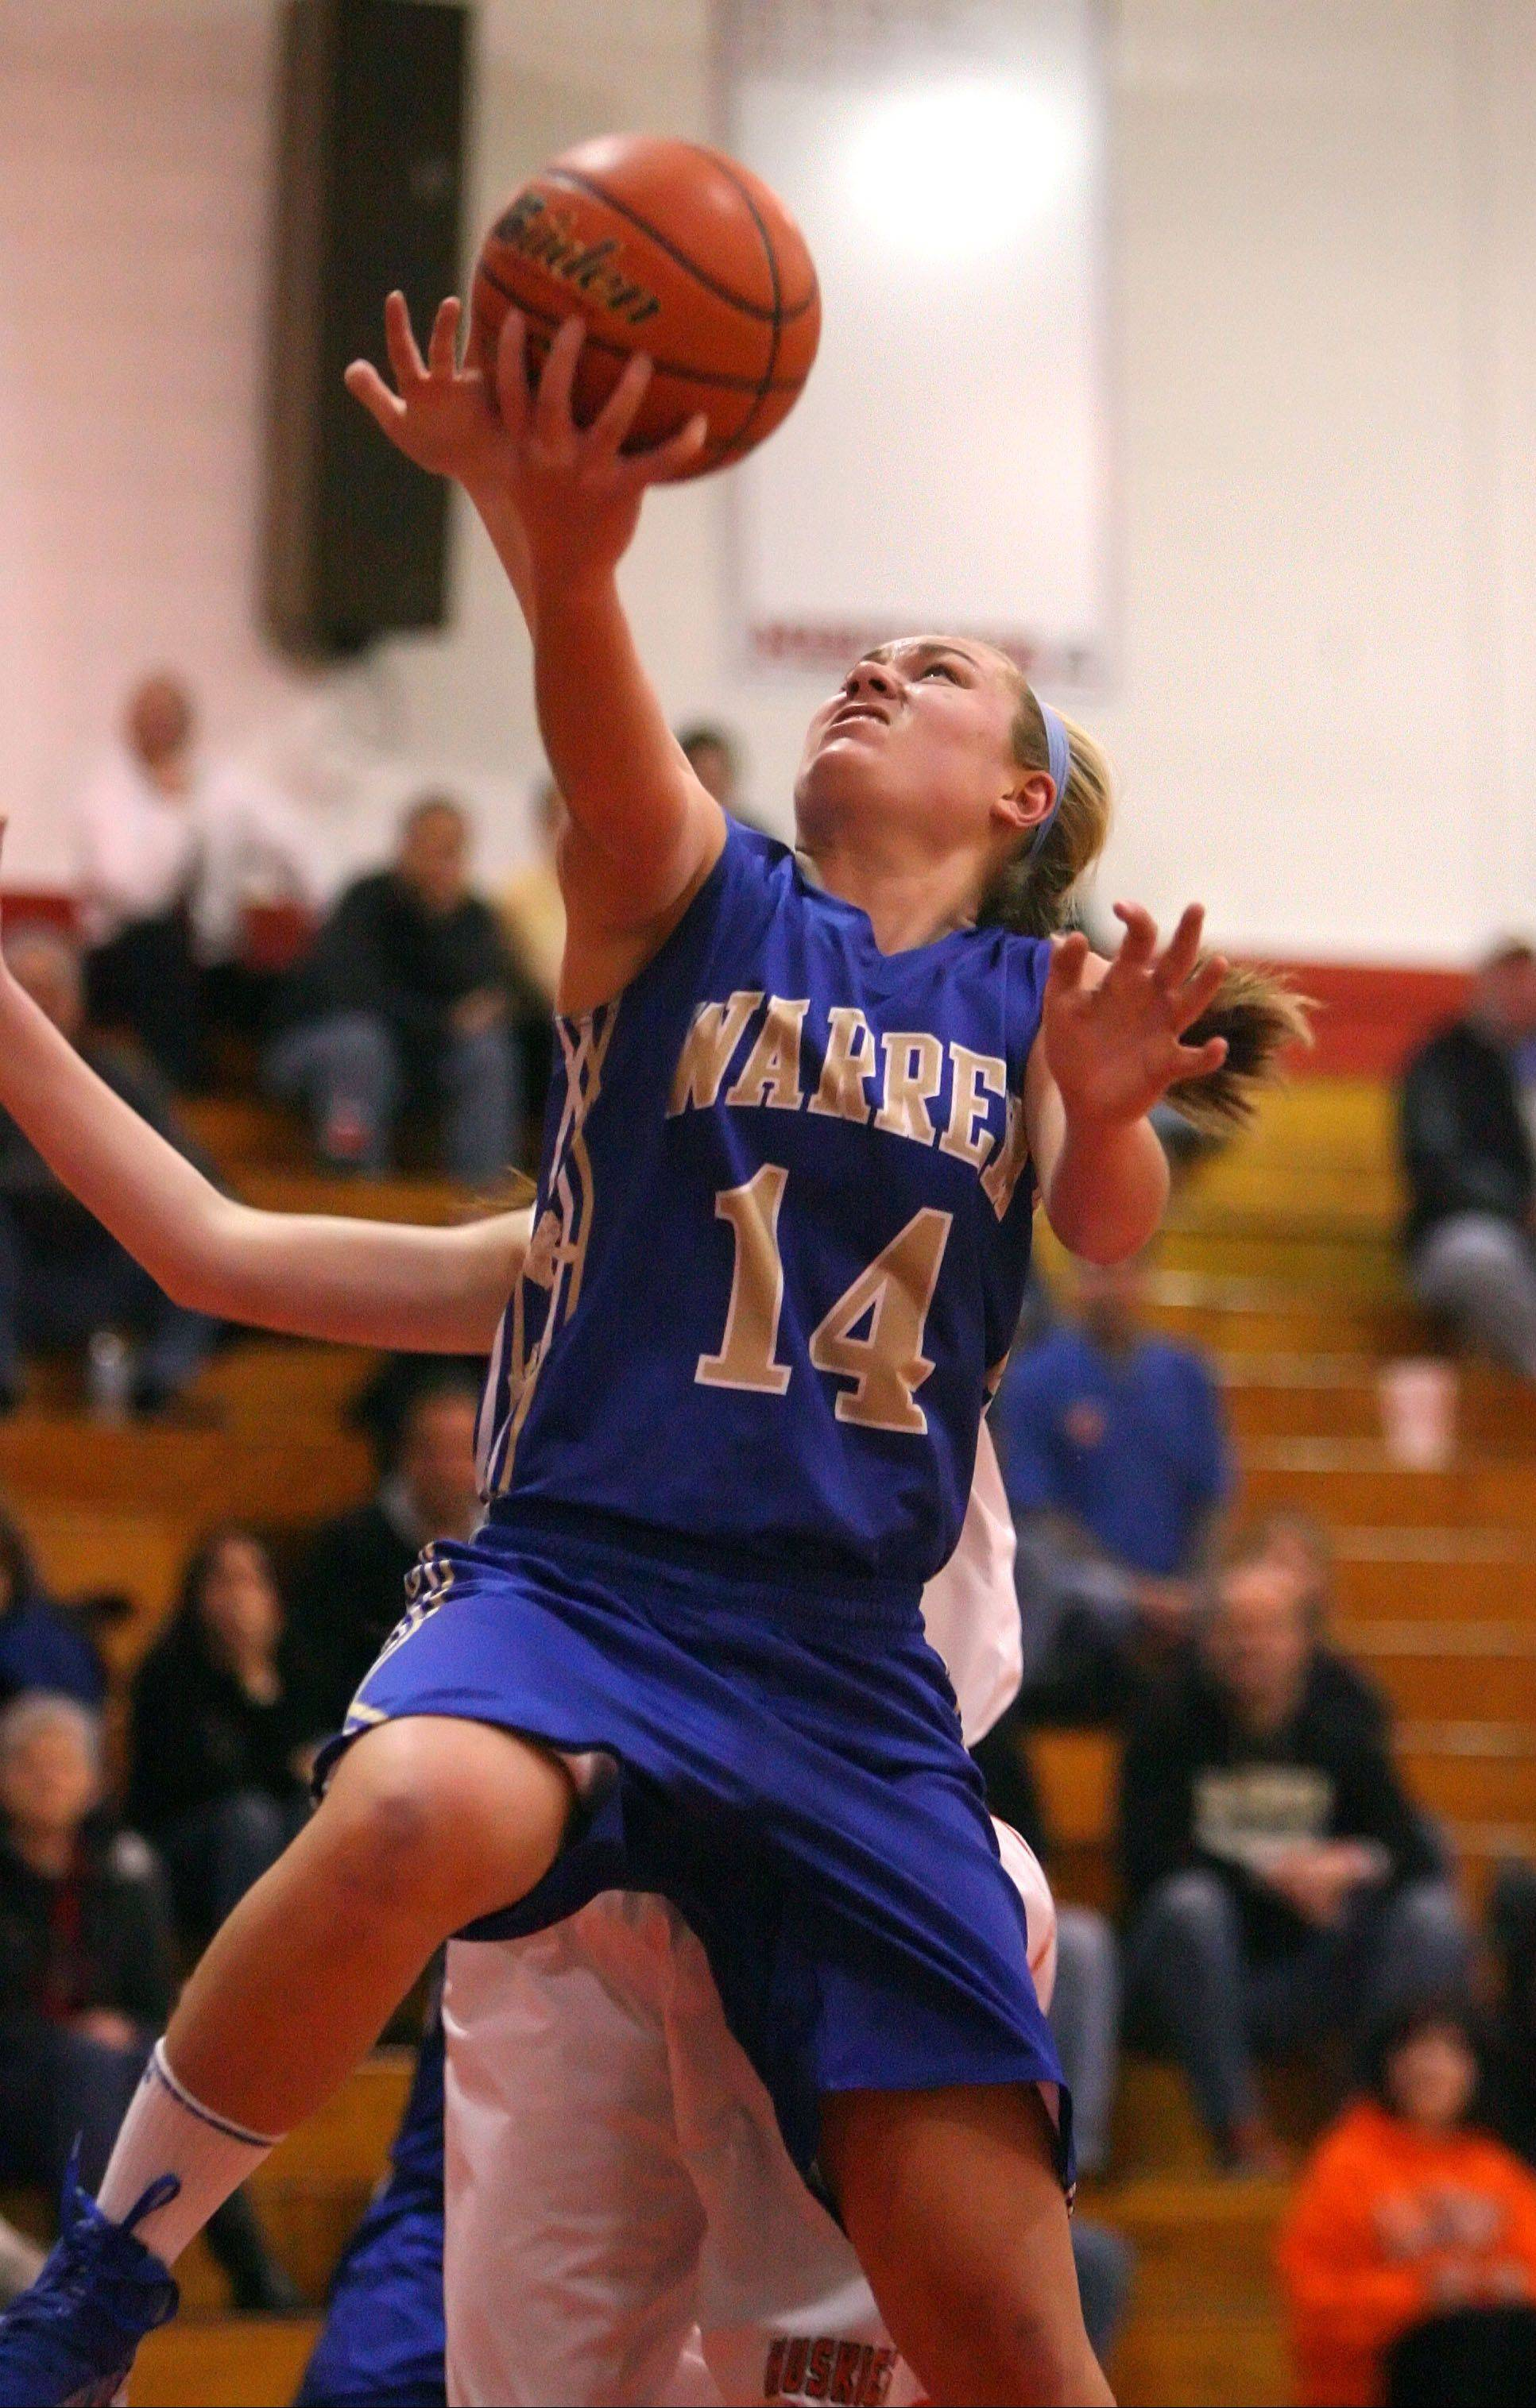 Warren's Kristen O'Brien drives to the hoop during Class 4A regional semifinal play against Hersey on Tuesday night at Mundelein.